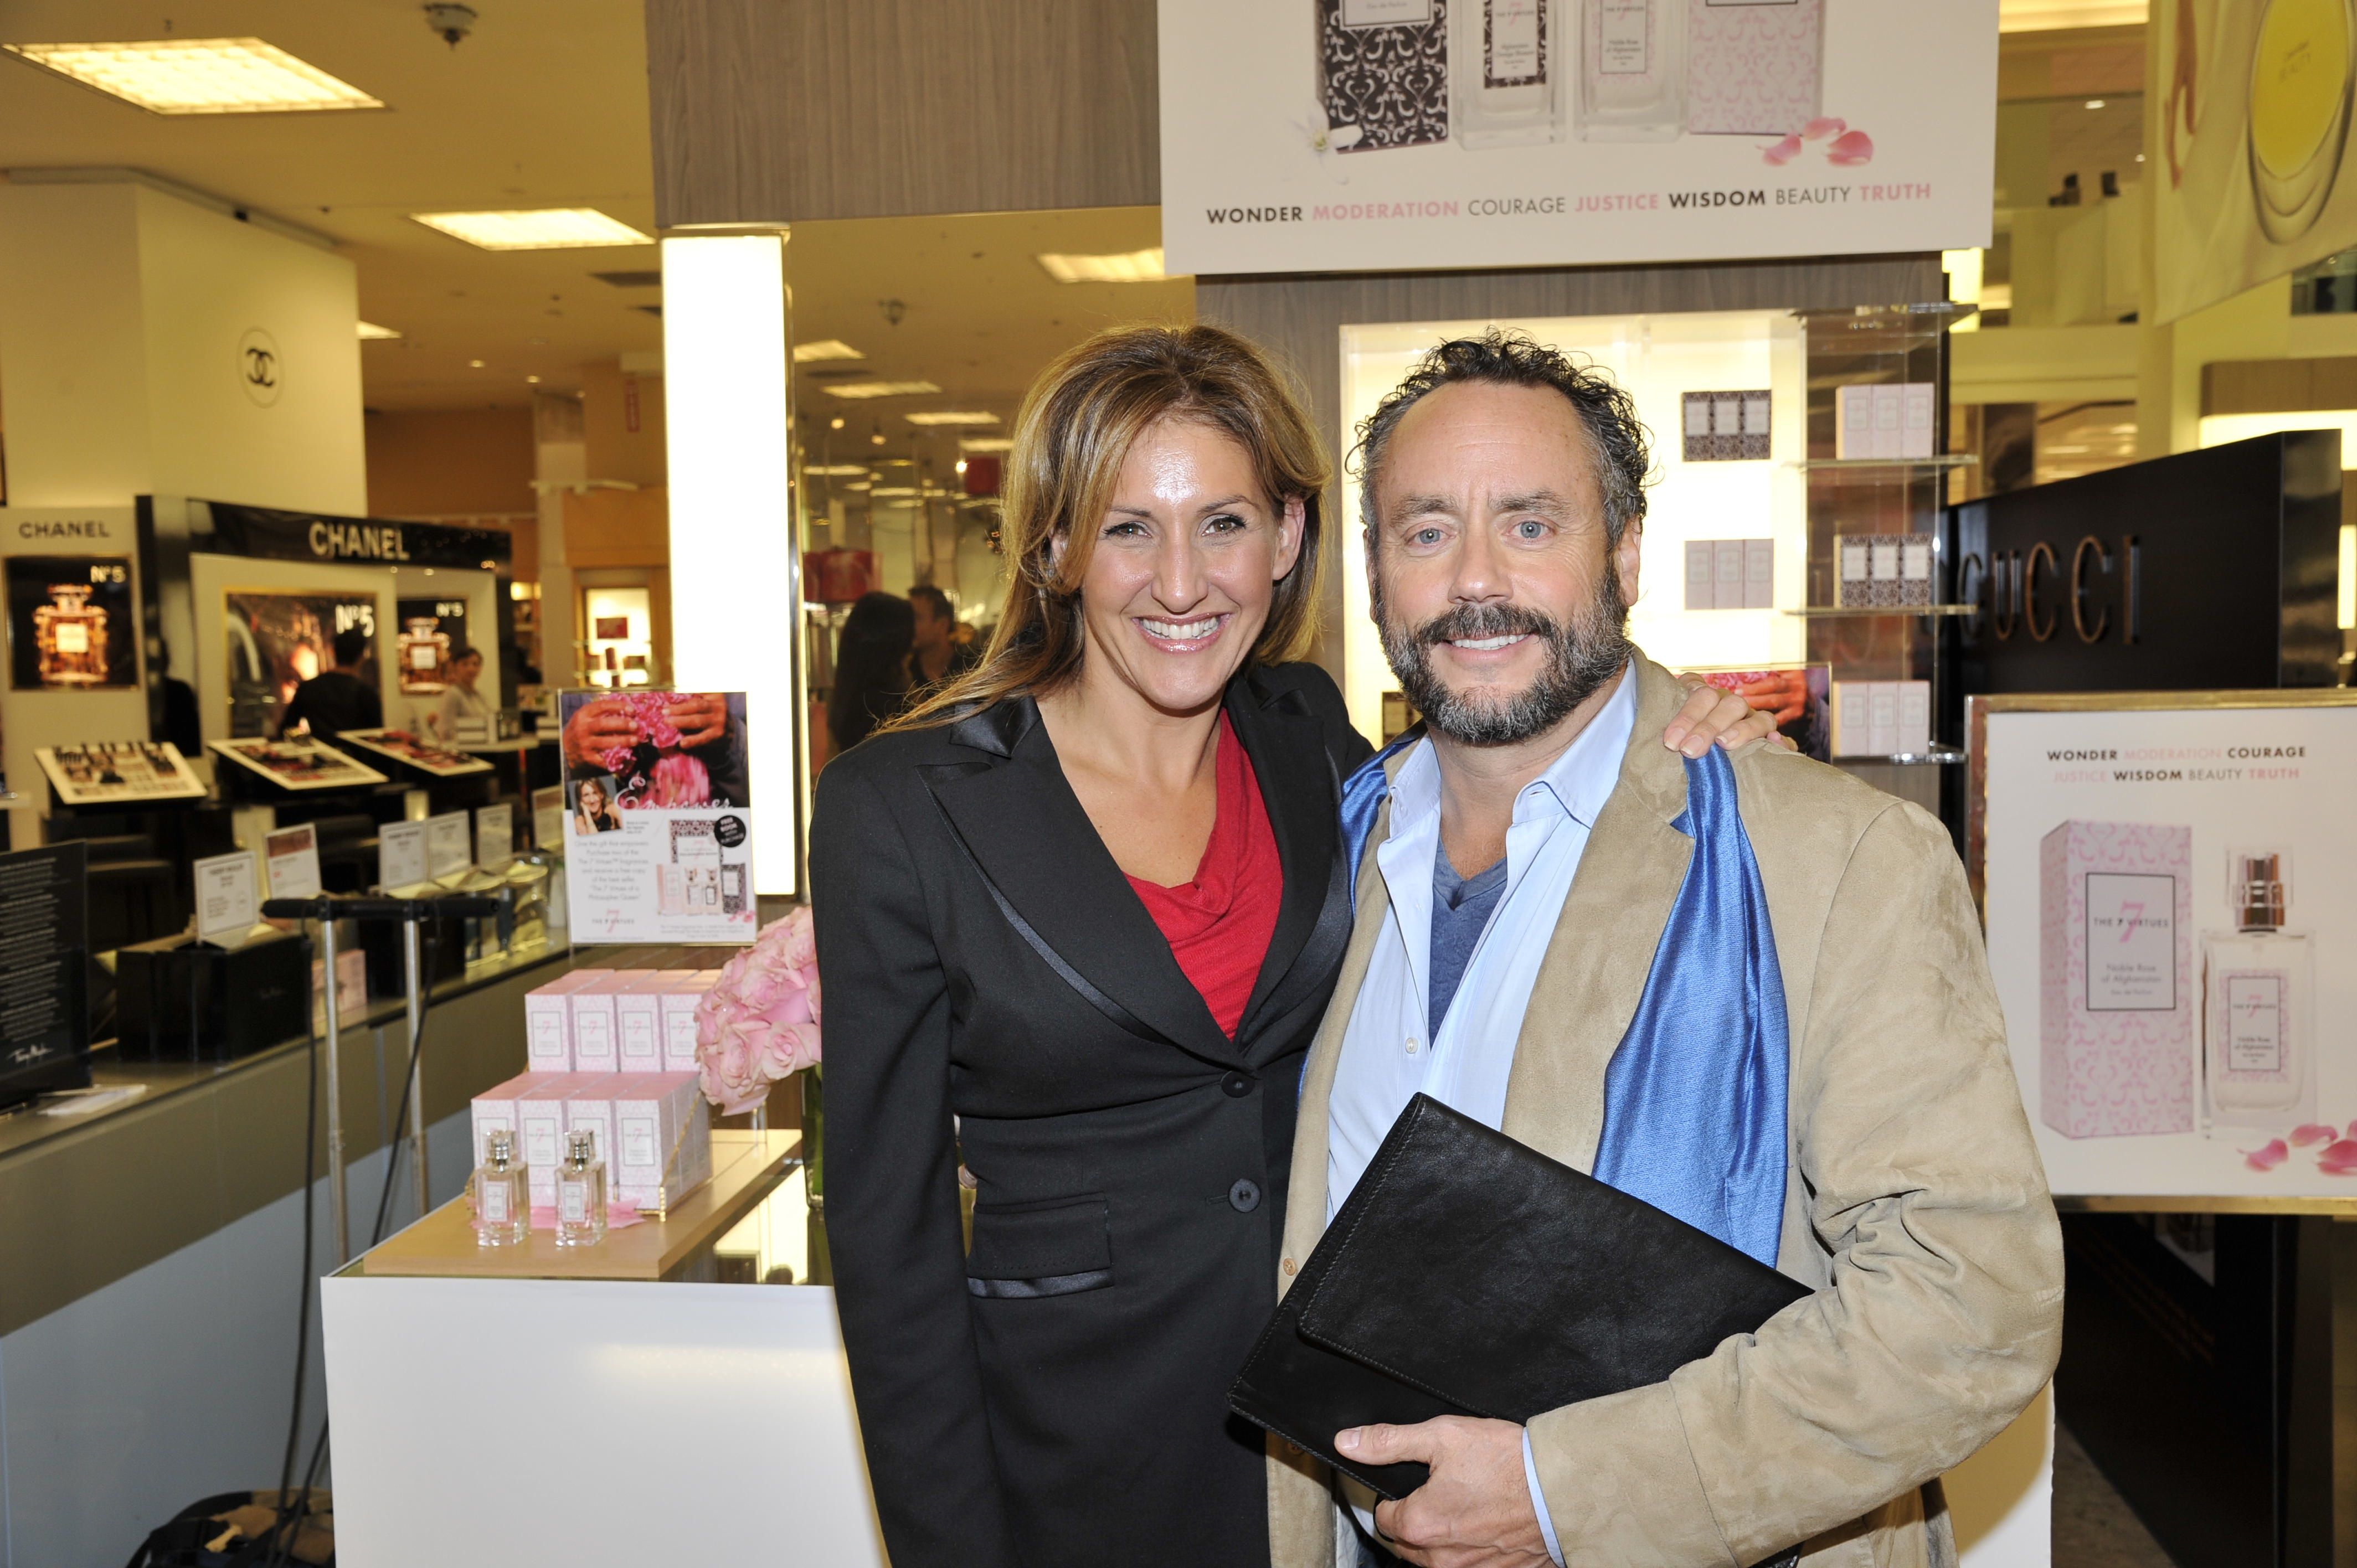 A picture of my mentor/business partner @wbrettwilson and me on my new Pinterest account. I feel like a kid! So much fun.